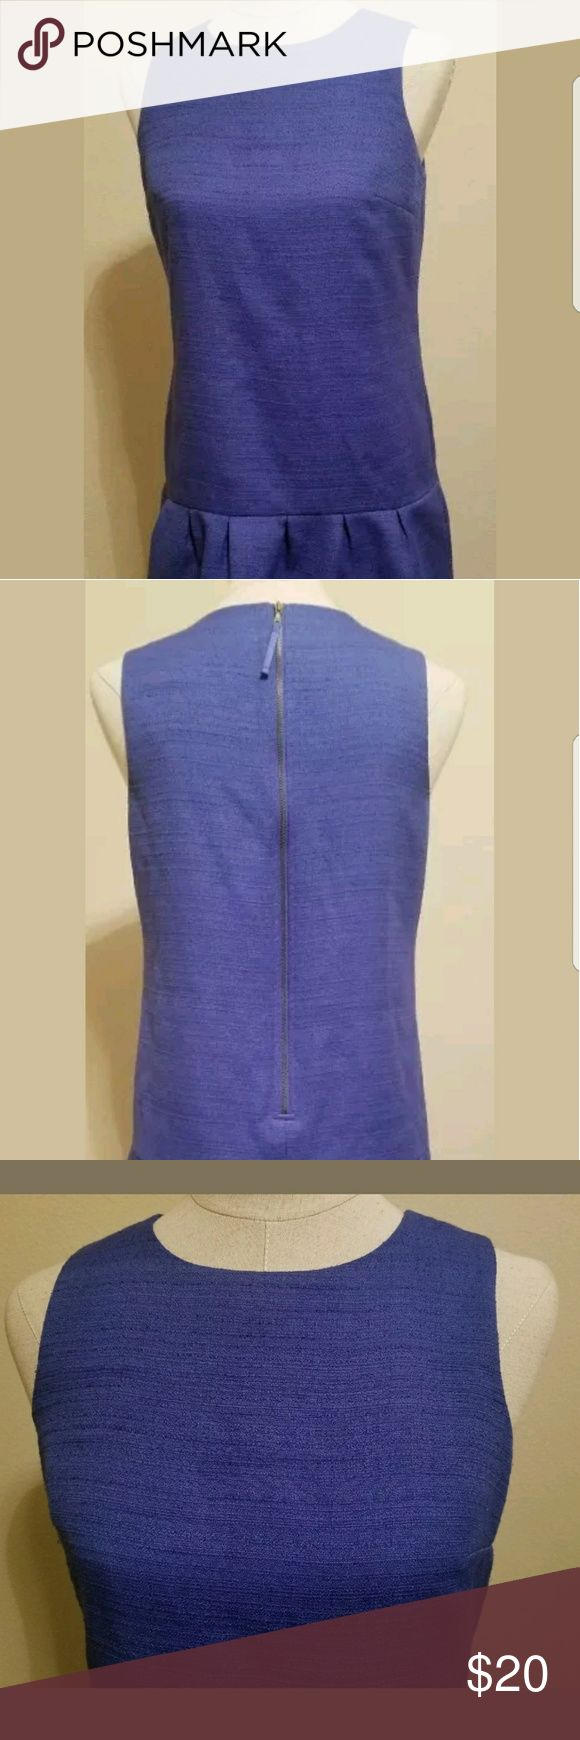 Ann Taylor LOFT Dress Drop Waist TextureSize 6P Ann Taylor LOFT Dress Drop Waist Texture  Size 6P Color Royal Blue  Pre owned im good condition.  Dress had a lower waist line and short, above the knee.  All items packaged with care.  Thanks for looking! LOFT Dresses